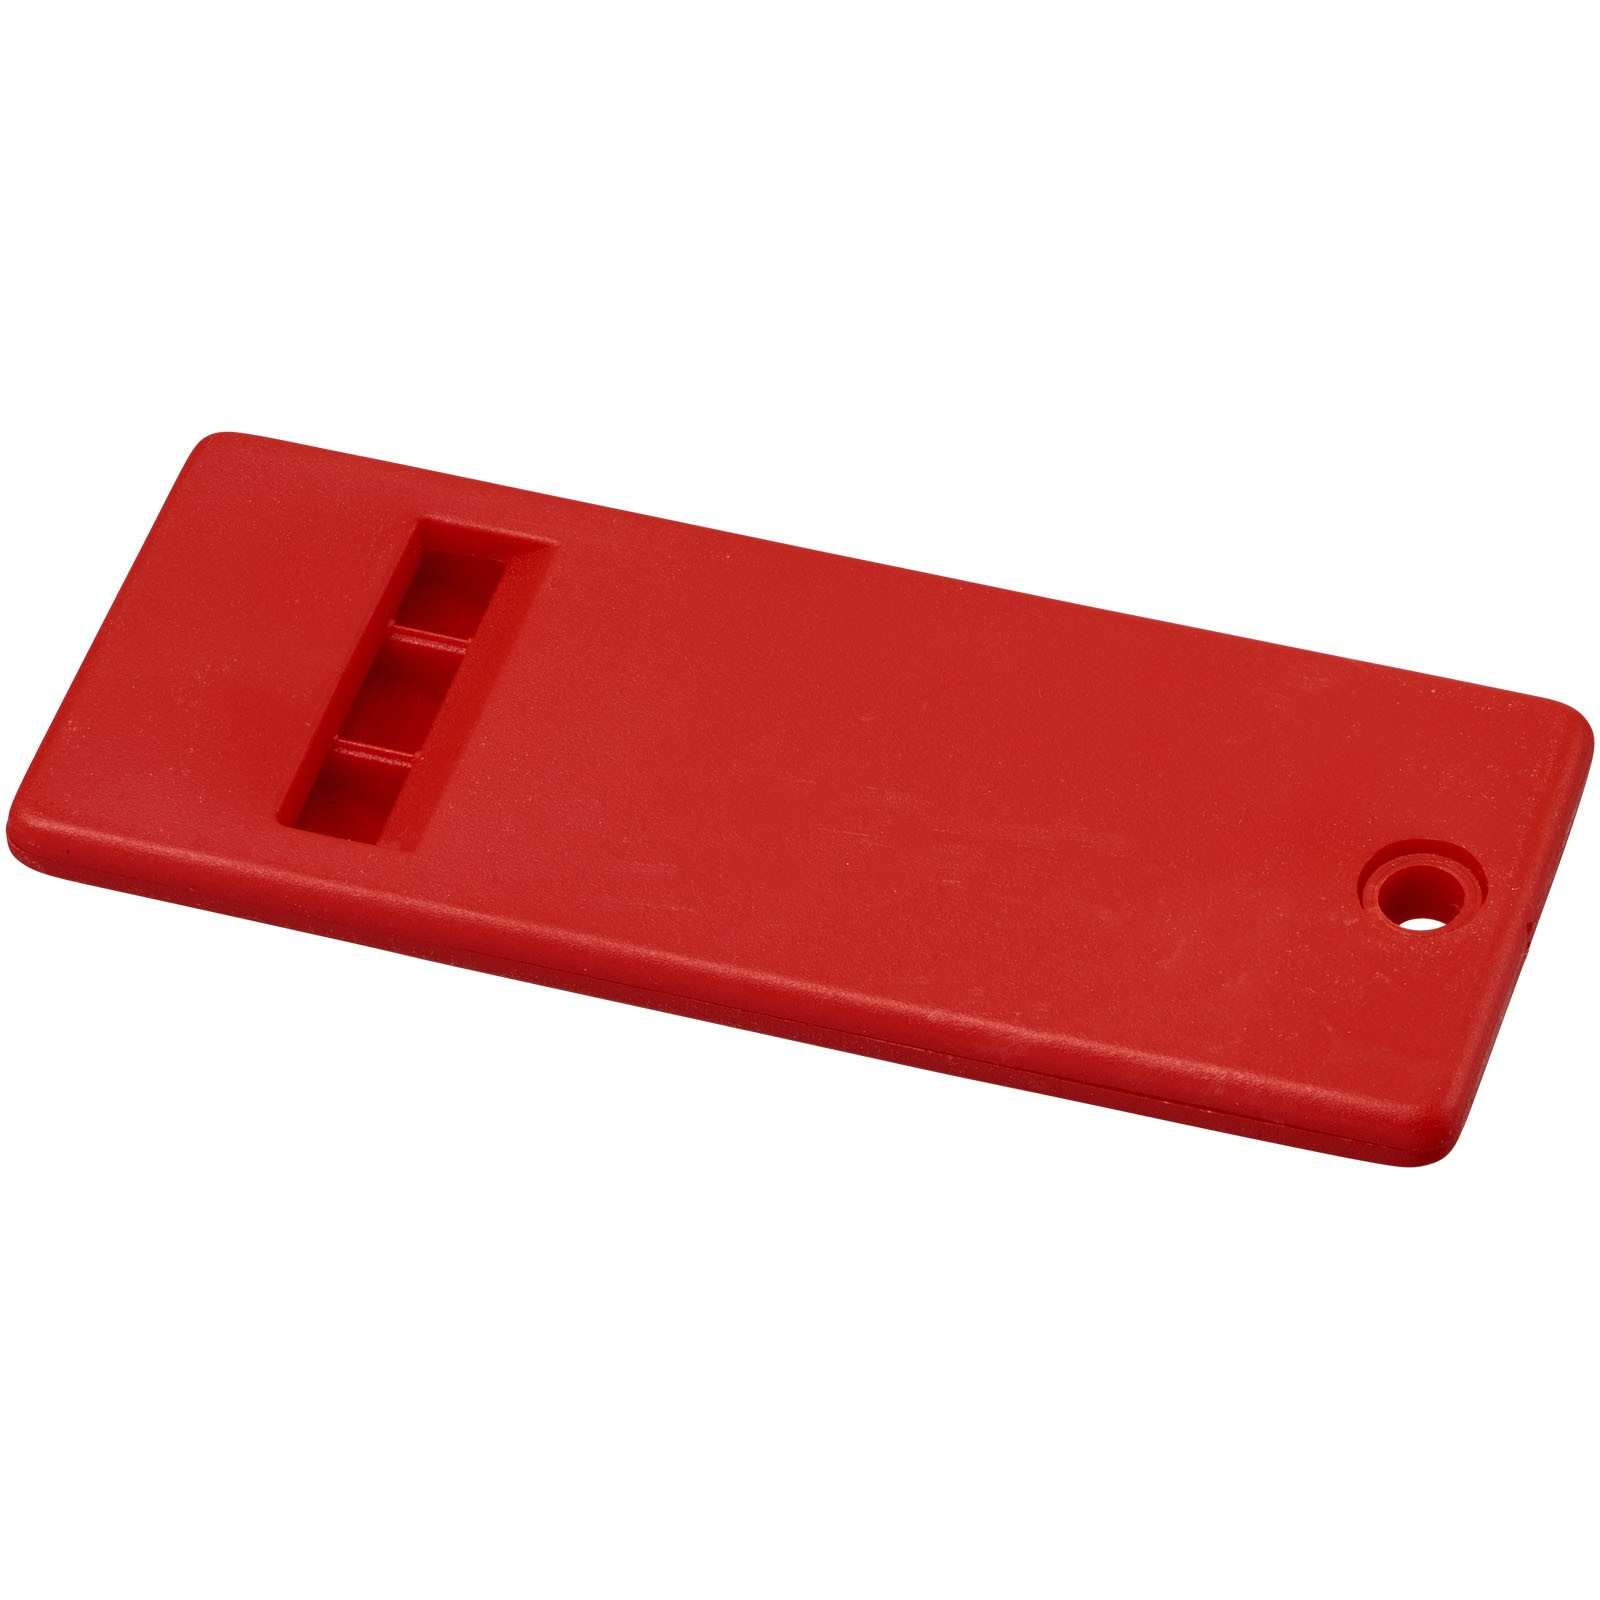 Wanda flat whistle with large branding surface - Red